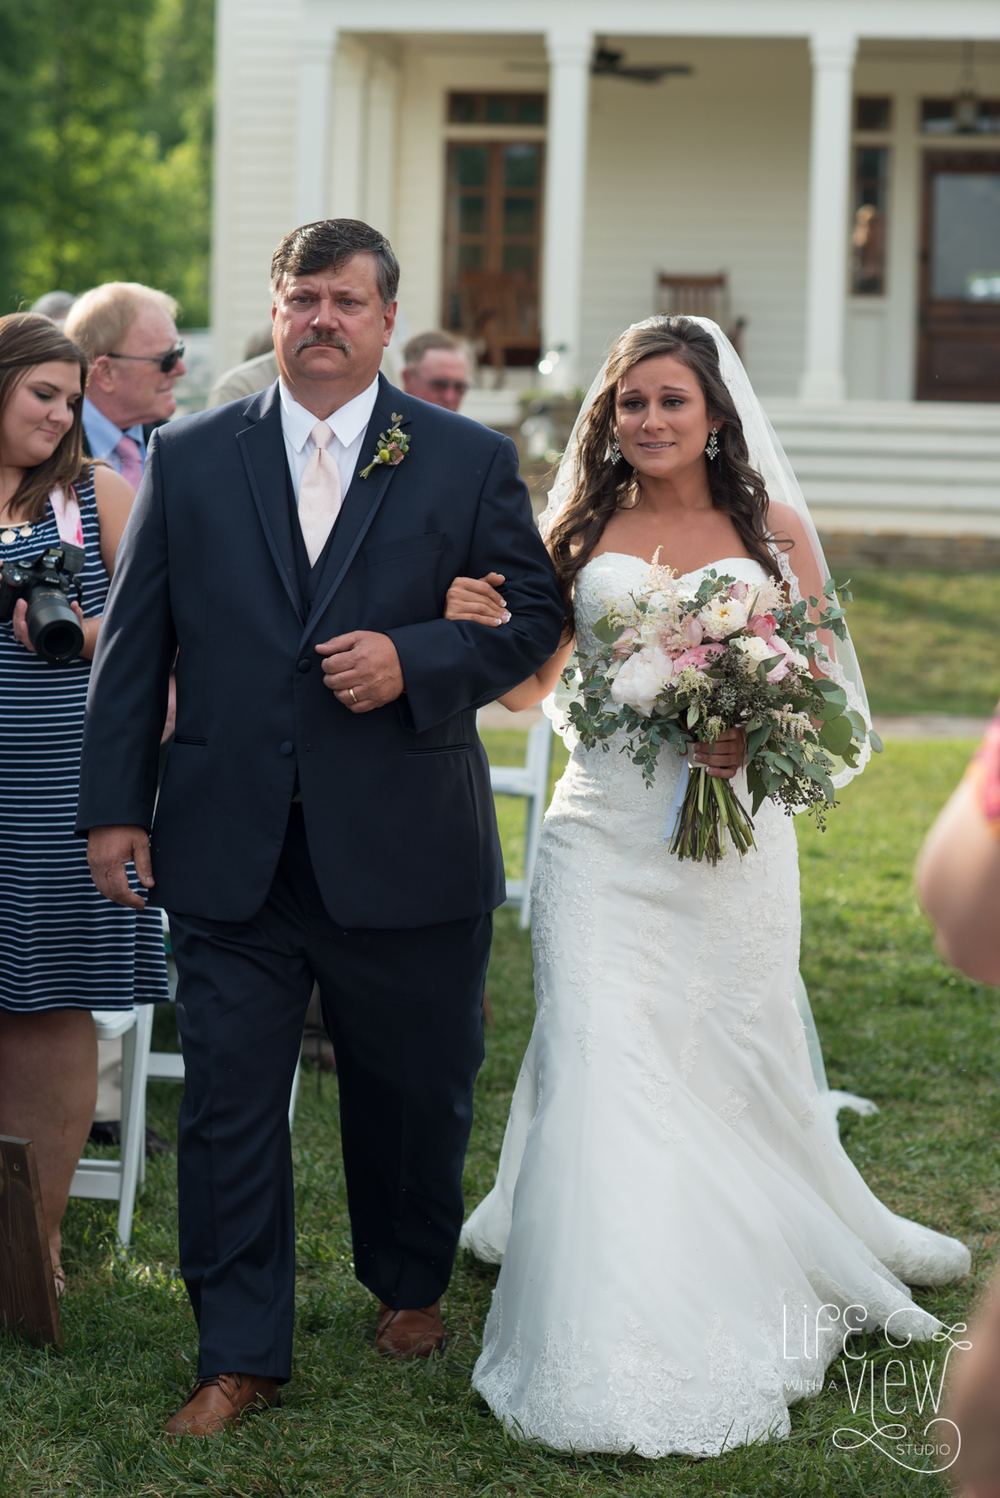 Sumner-Wedding-89.jpg